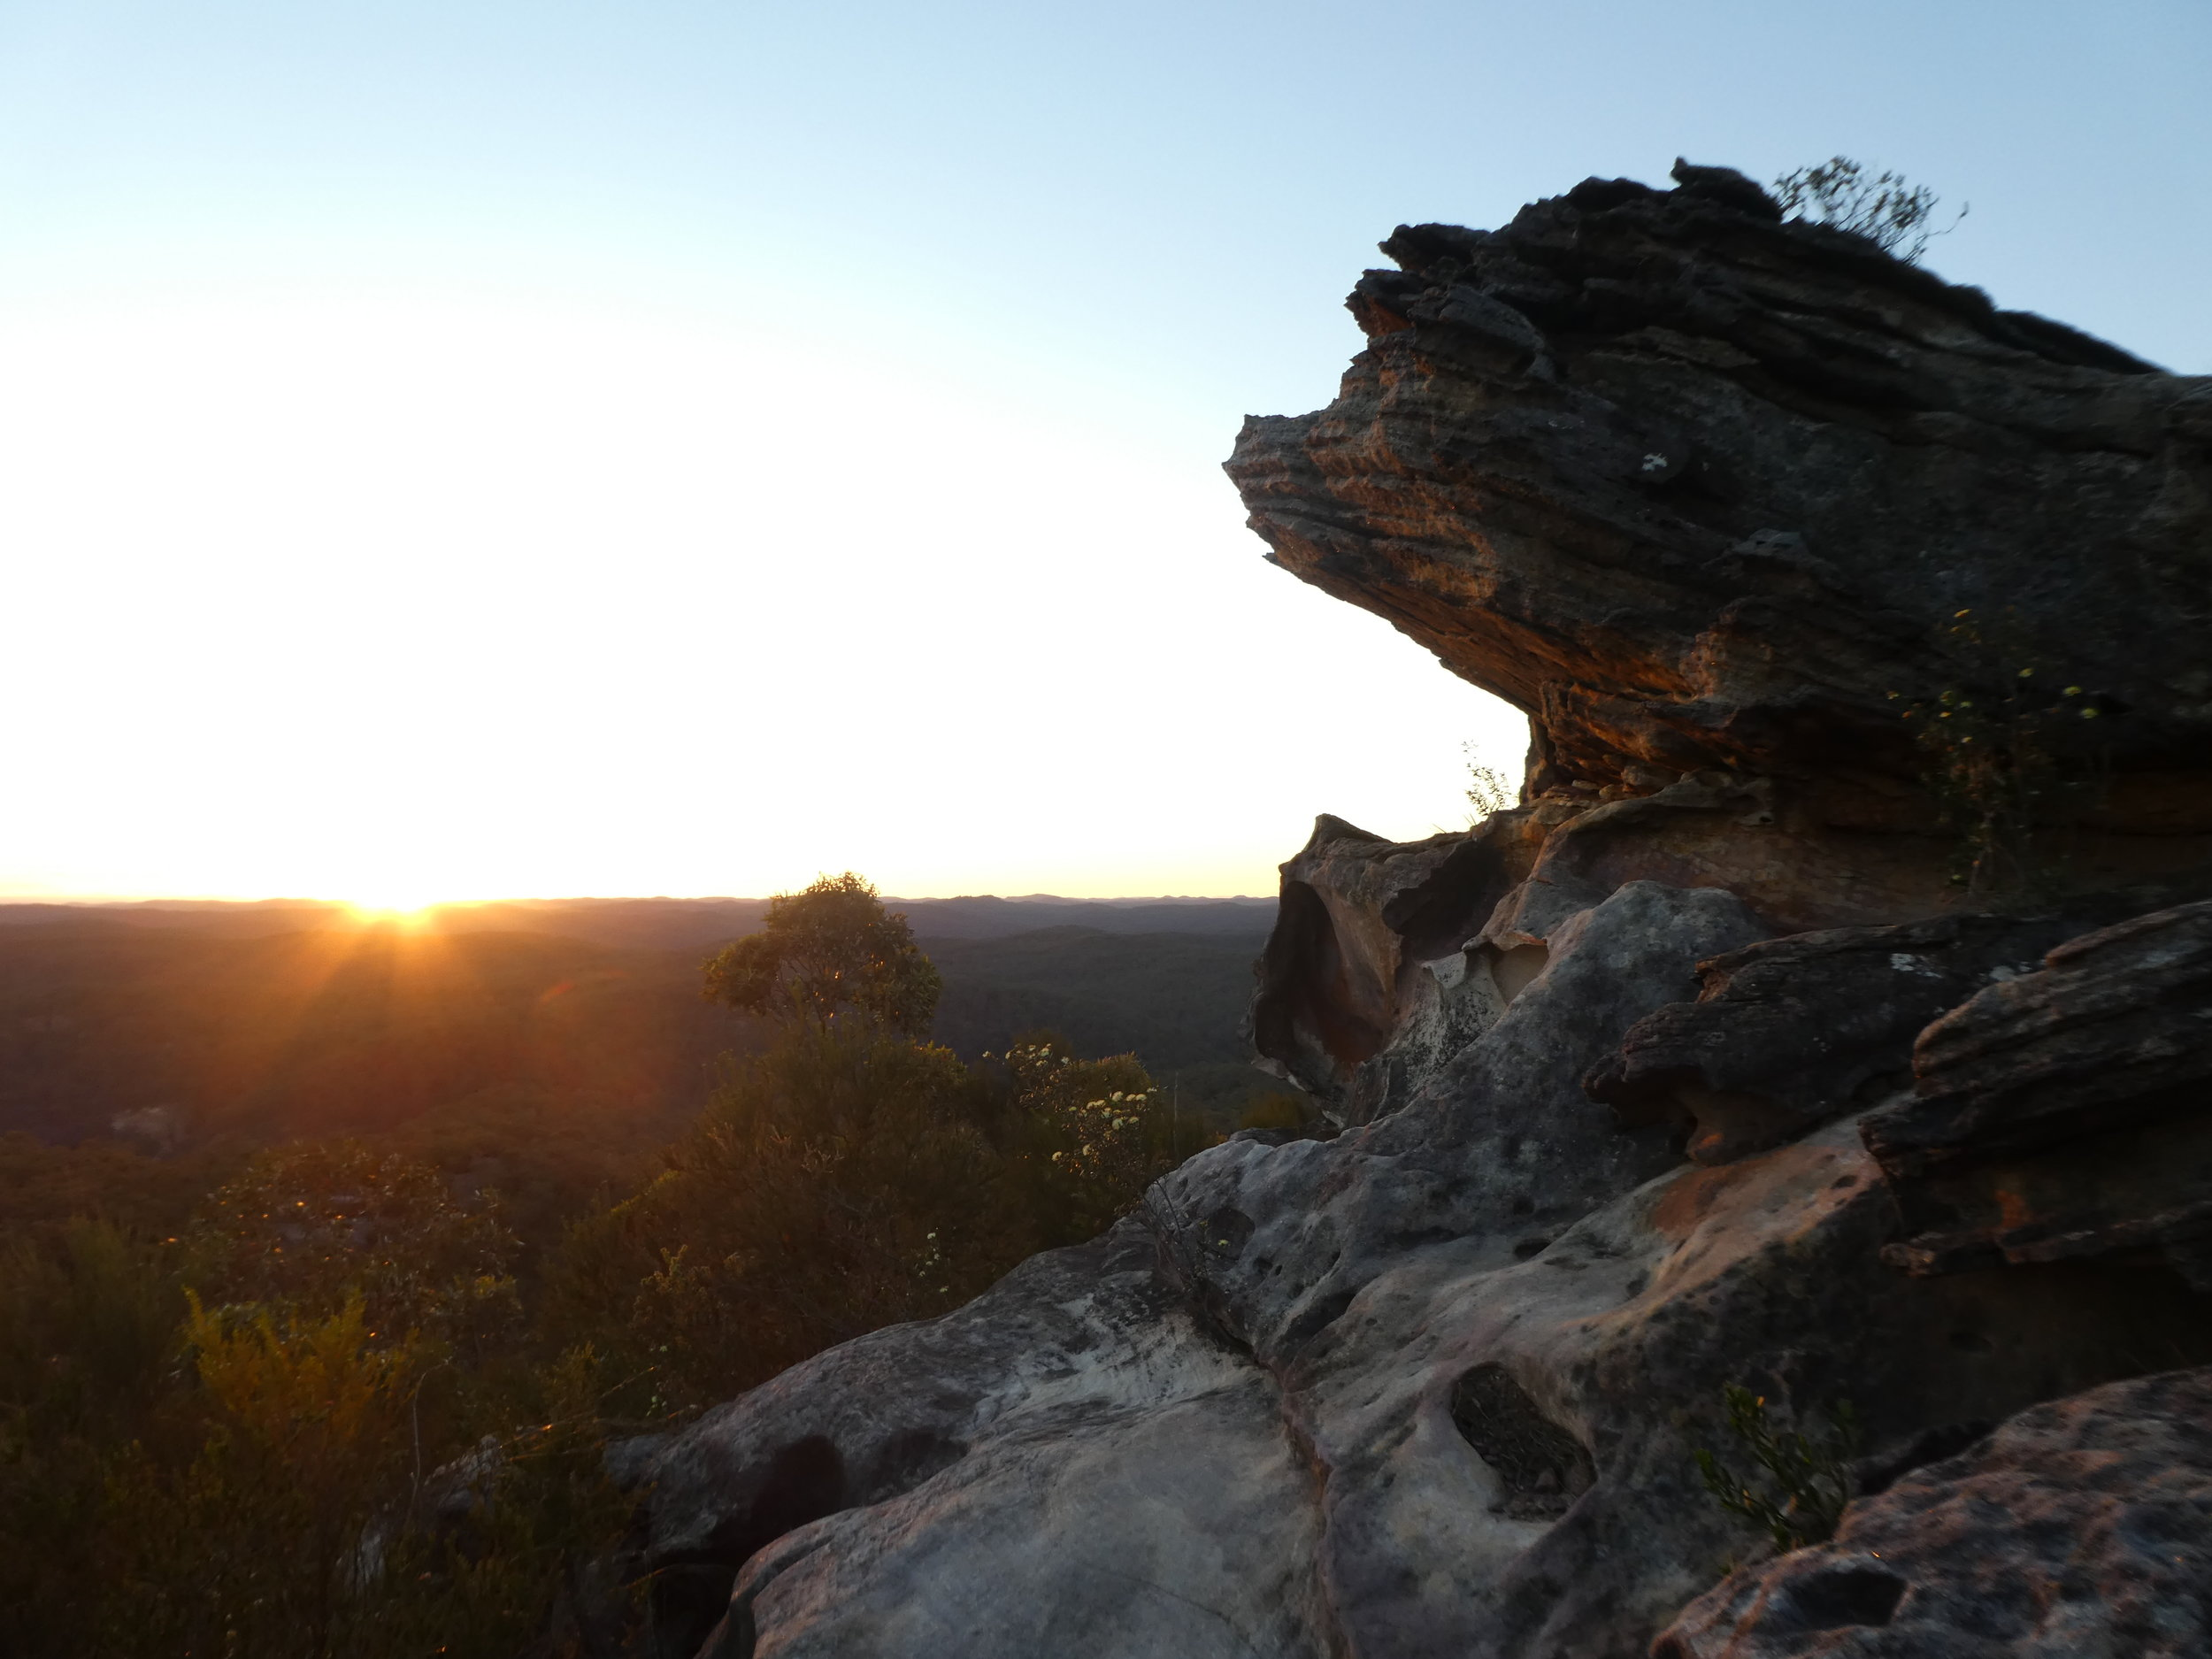 Sights of Mt Wondabyne